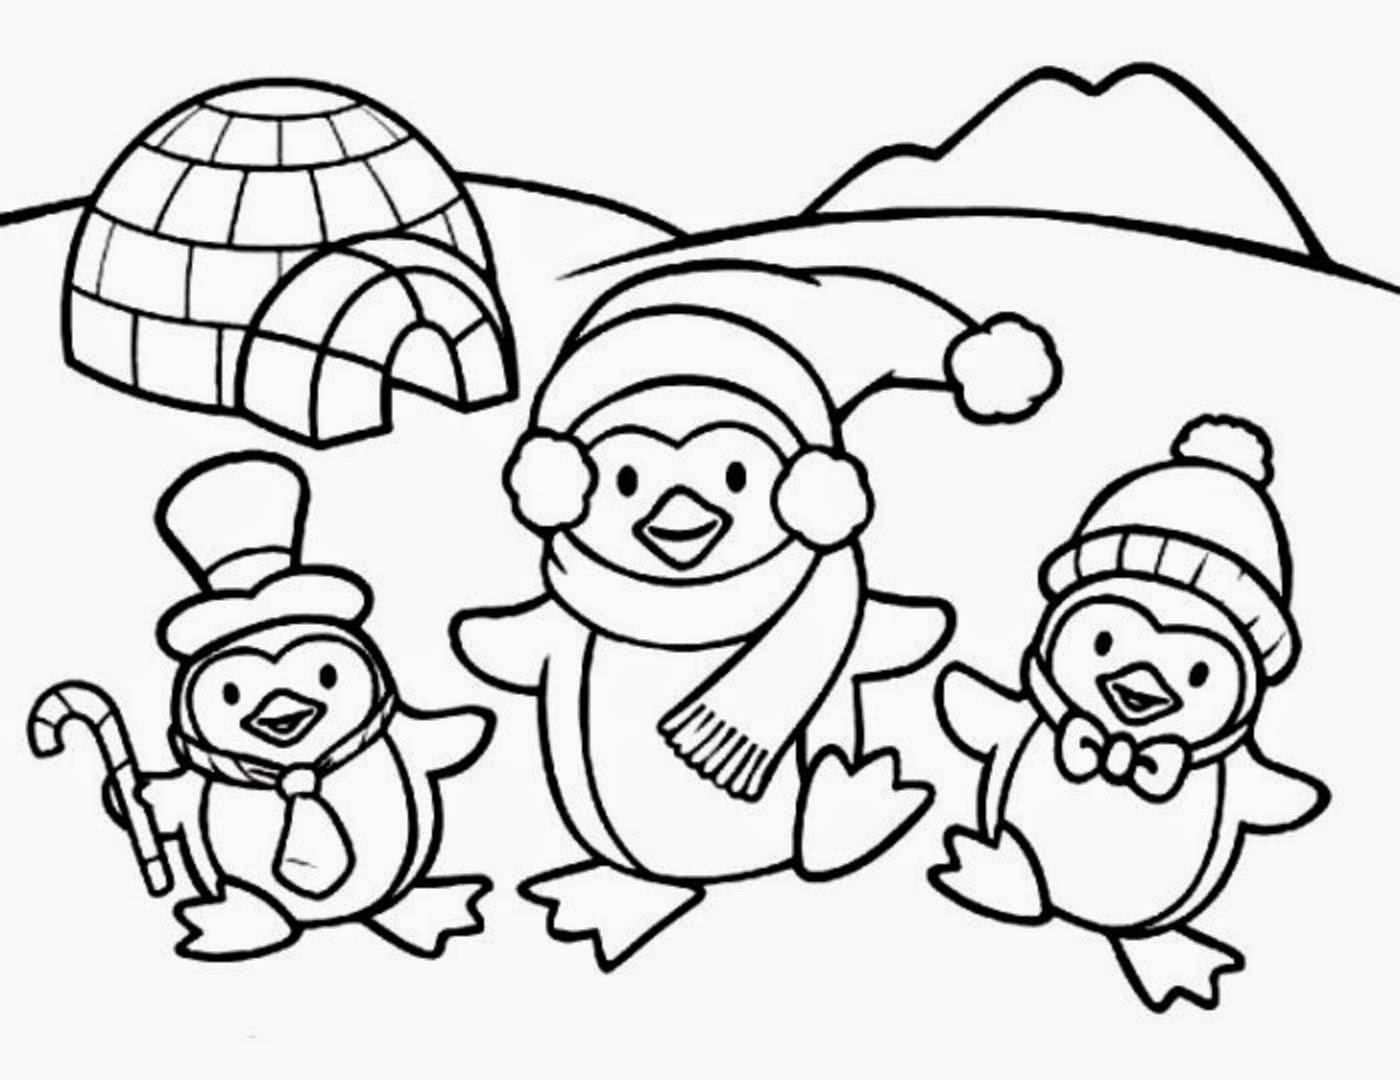 penguin colouring page printable penguin coloring pages for kids cool2bkids penguin page colouring